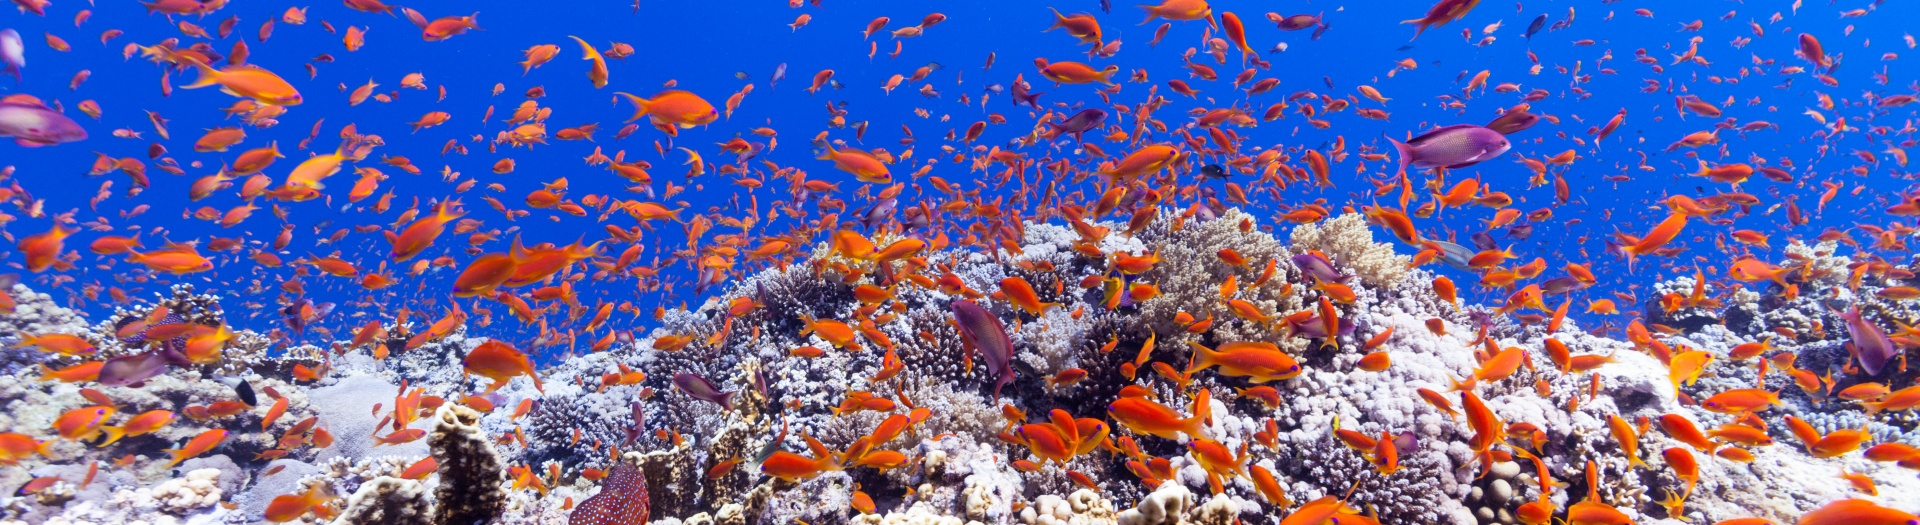 Underwater diving prices with DUNE Red Sea